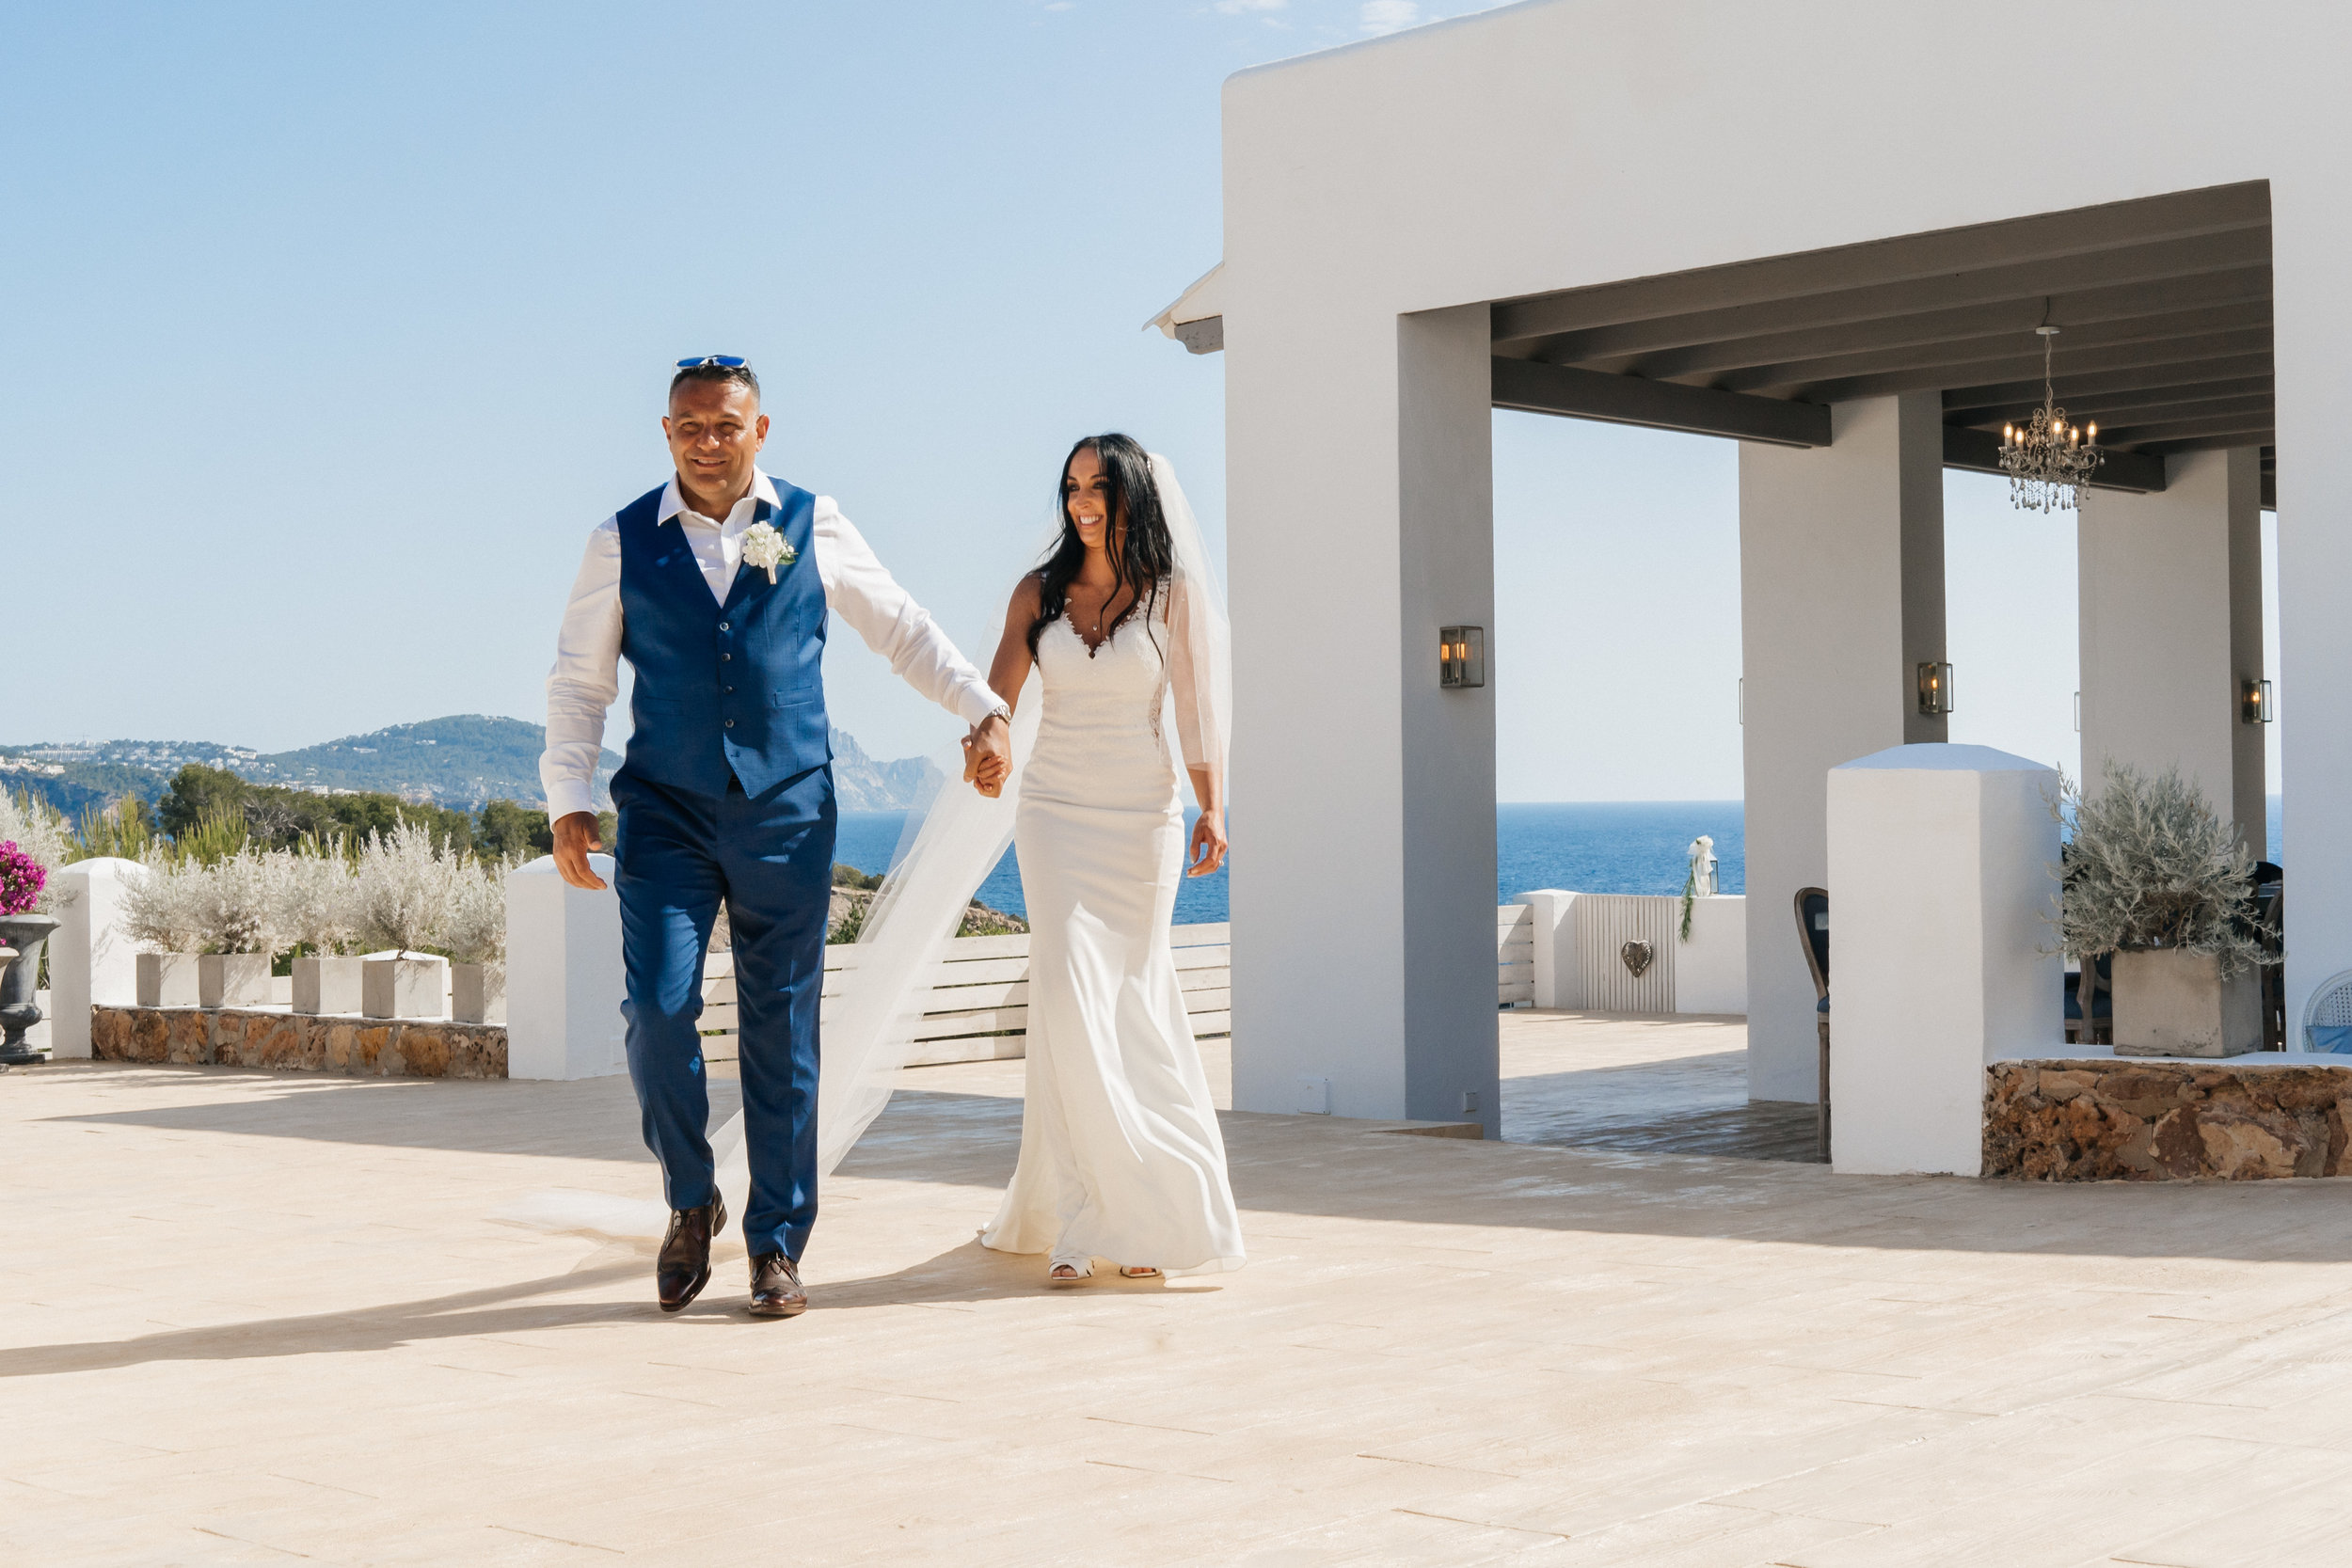 Ibiza Love - A destination wedding under the hot skies of Ibiza, the white Isle….. a second occasion spent with Karen, Neil, Ethan & crew. Ibiza really is a wonderful place and the Elixir was a truly welcoming venue for their special day.